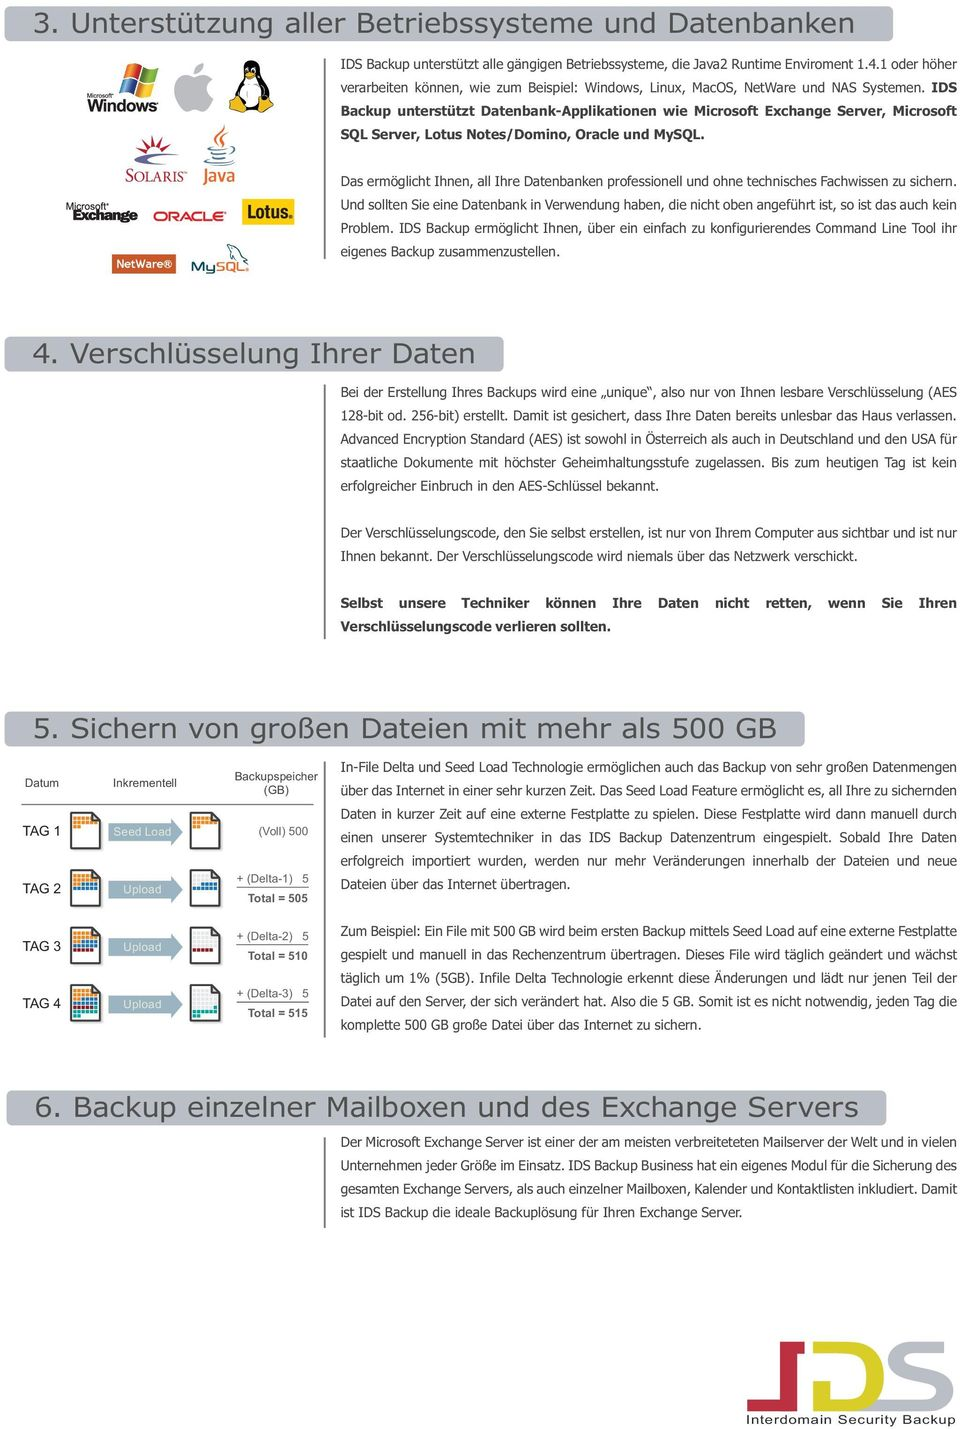 IDS Backup unterstützt DatenbankApplikationen wie Microsoft Exchange Server, Microsoft SQL Server, Lotus Notes/Domino, Oracle und MySQL.